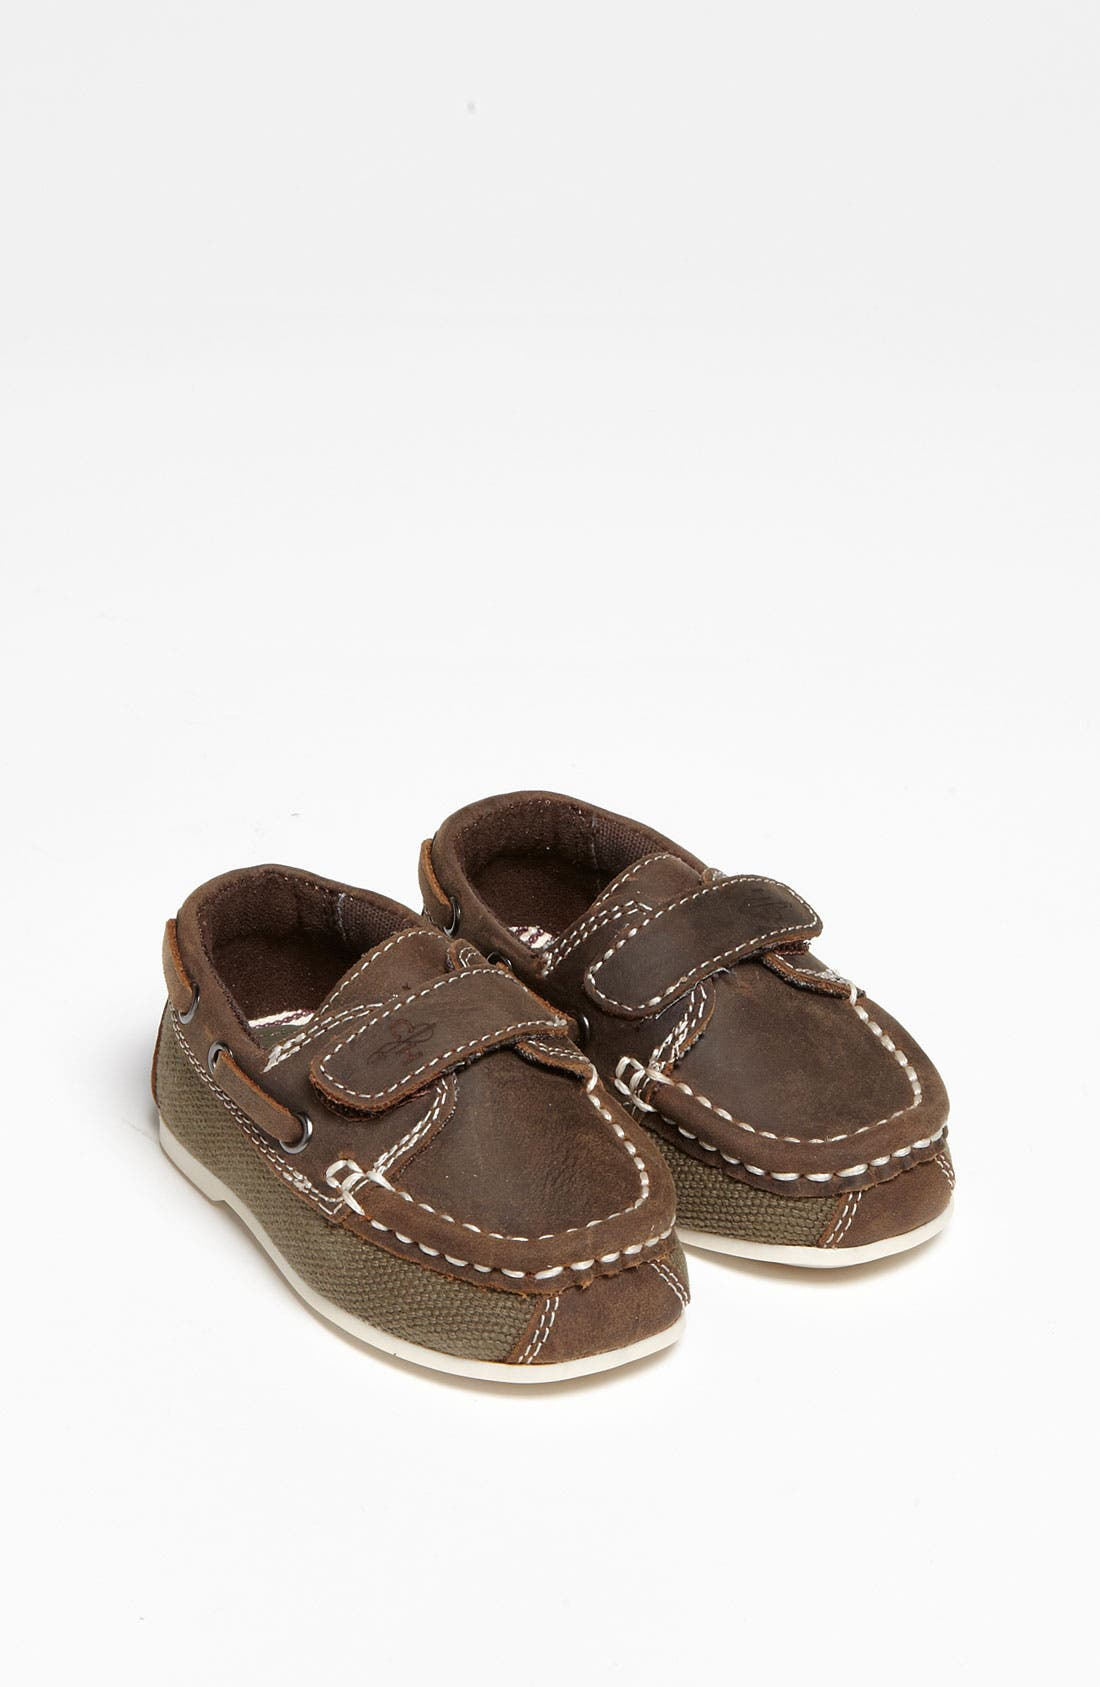 Alternate Image 1 Selected - Cole Haan 'Mini Sail' Boat Shoe (Baby)